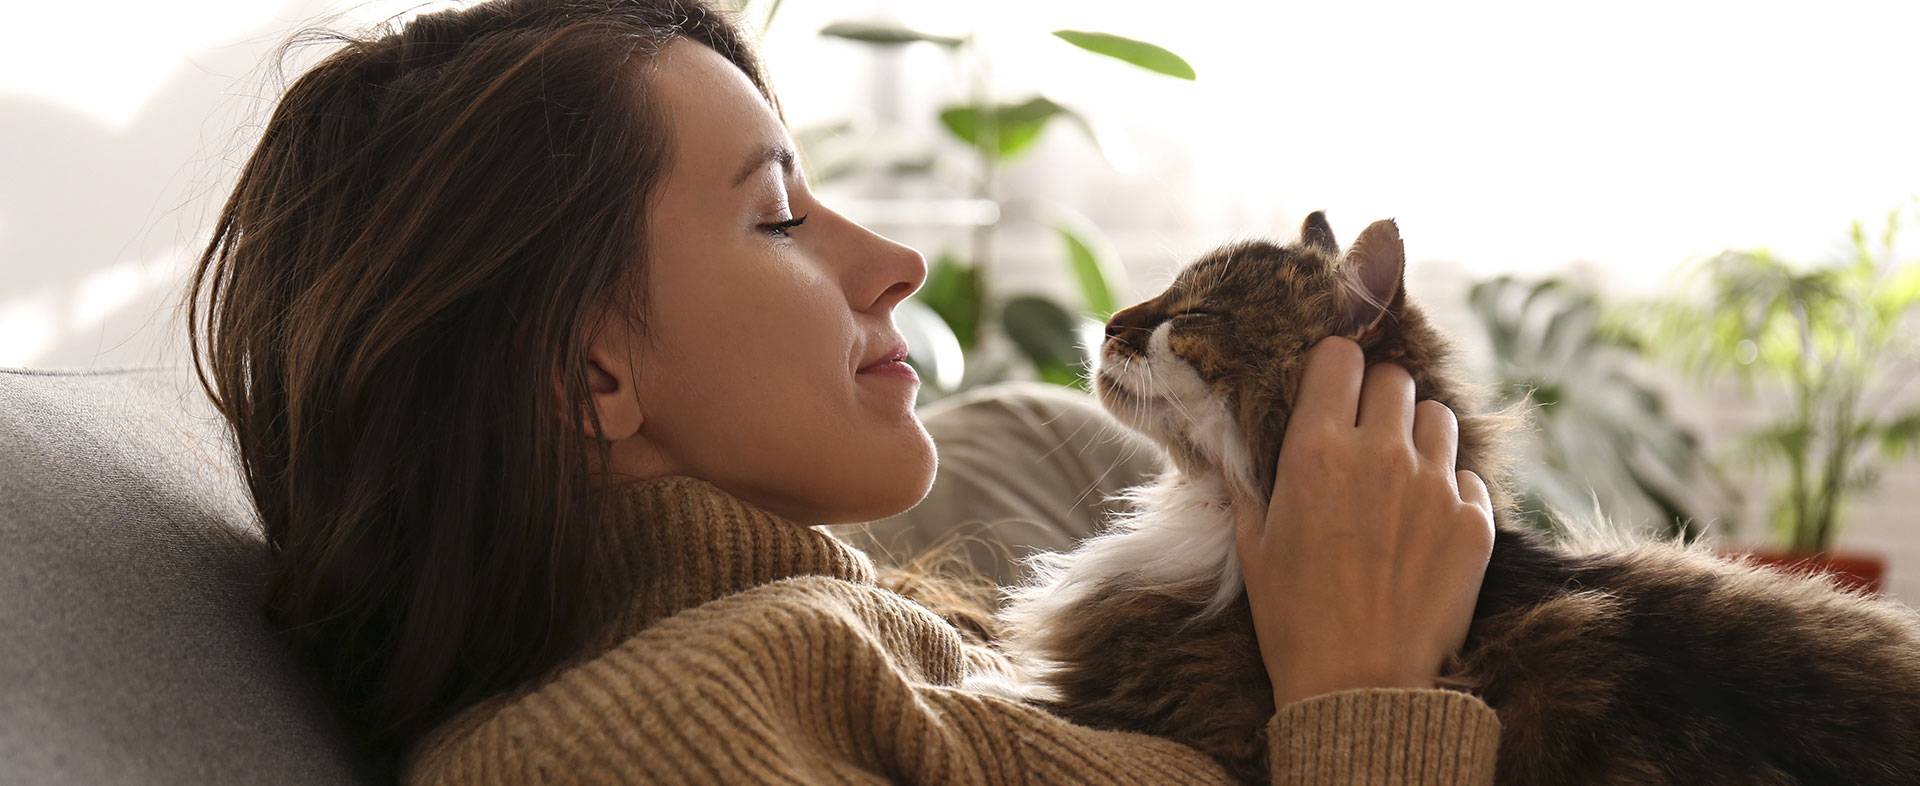 Communication intuitive animale Bas Rhin : Chat